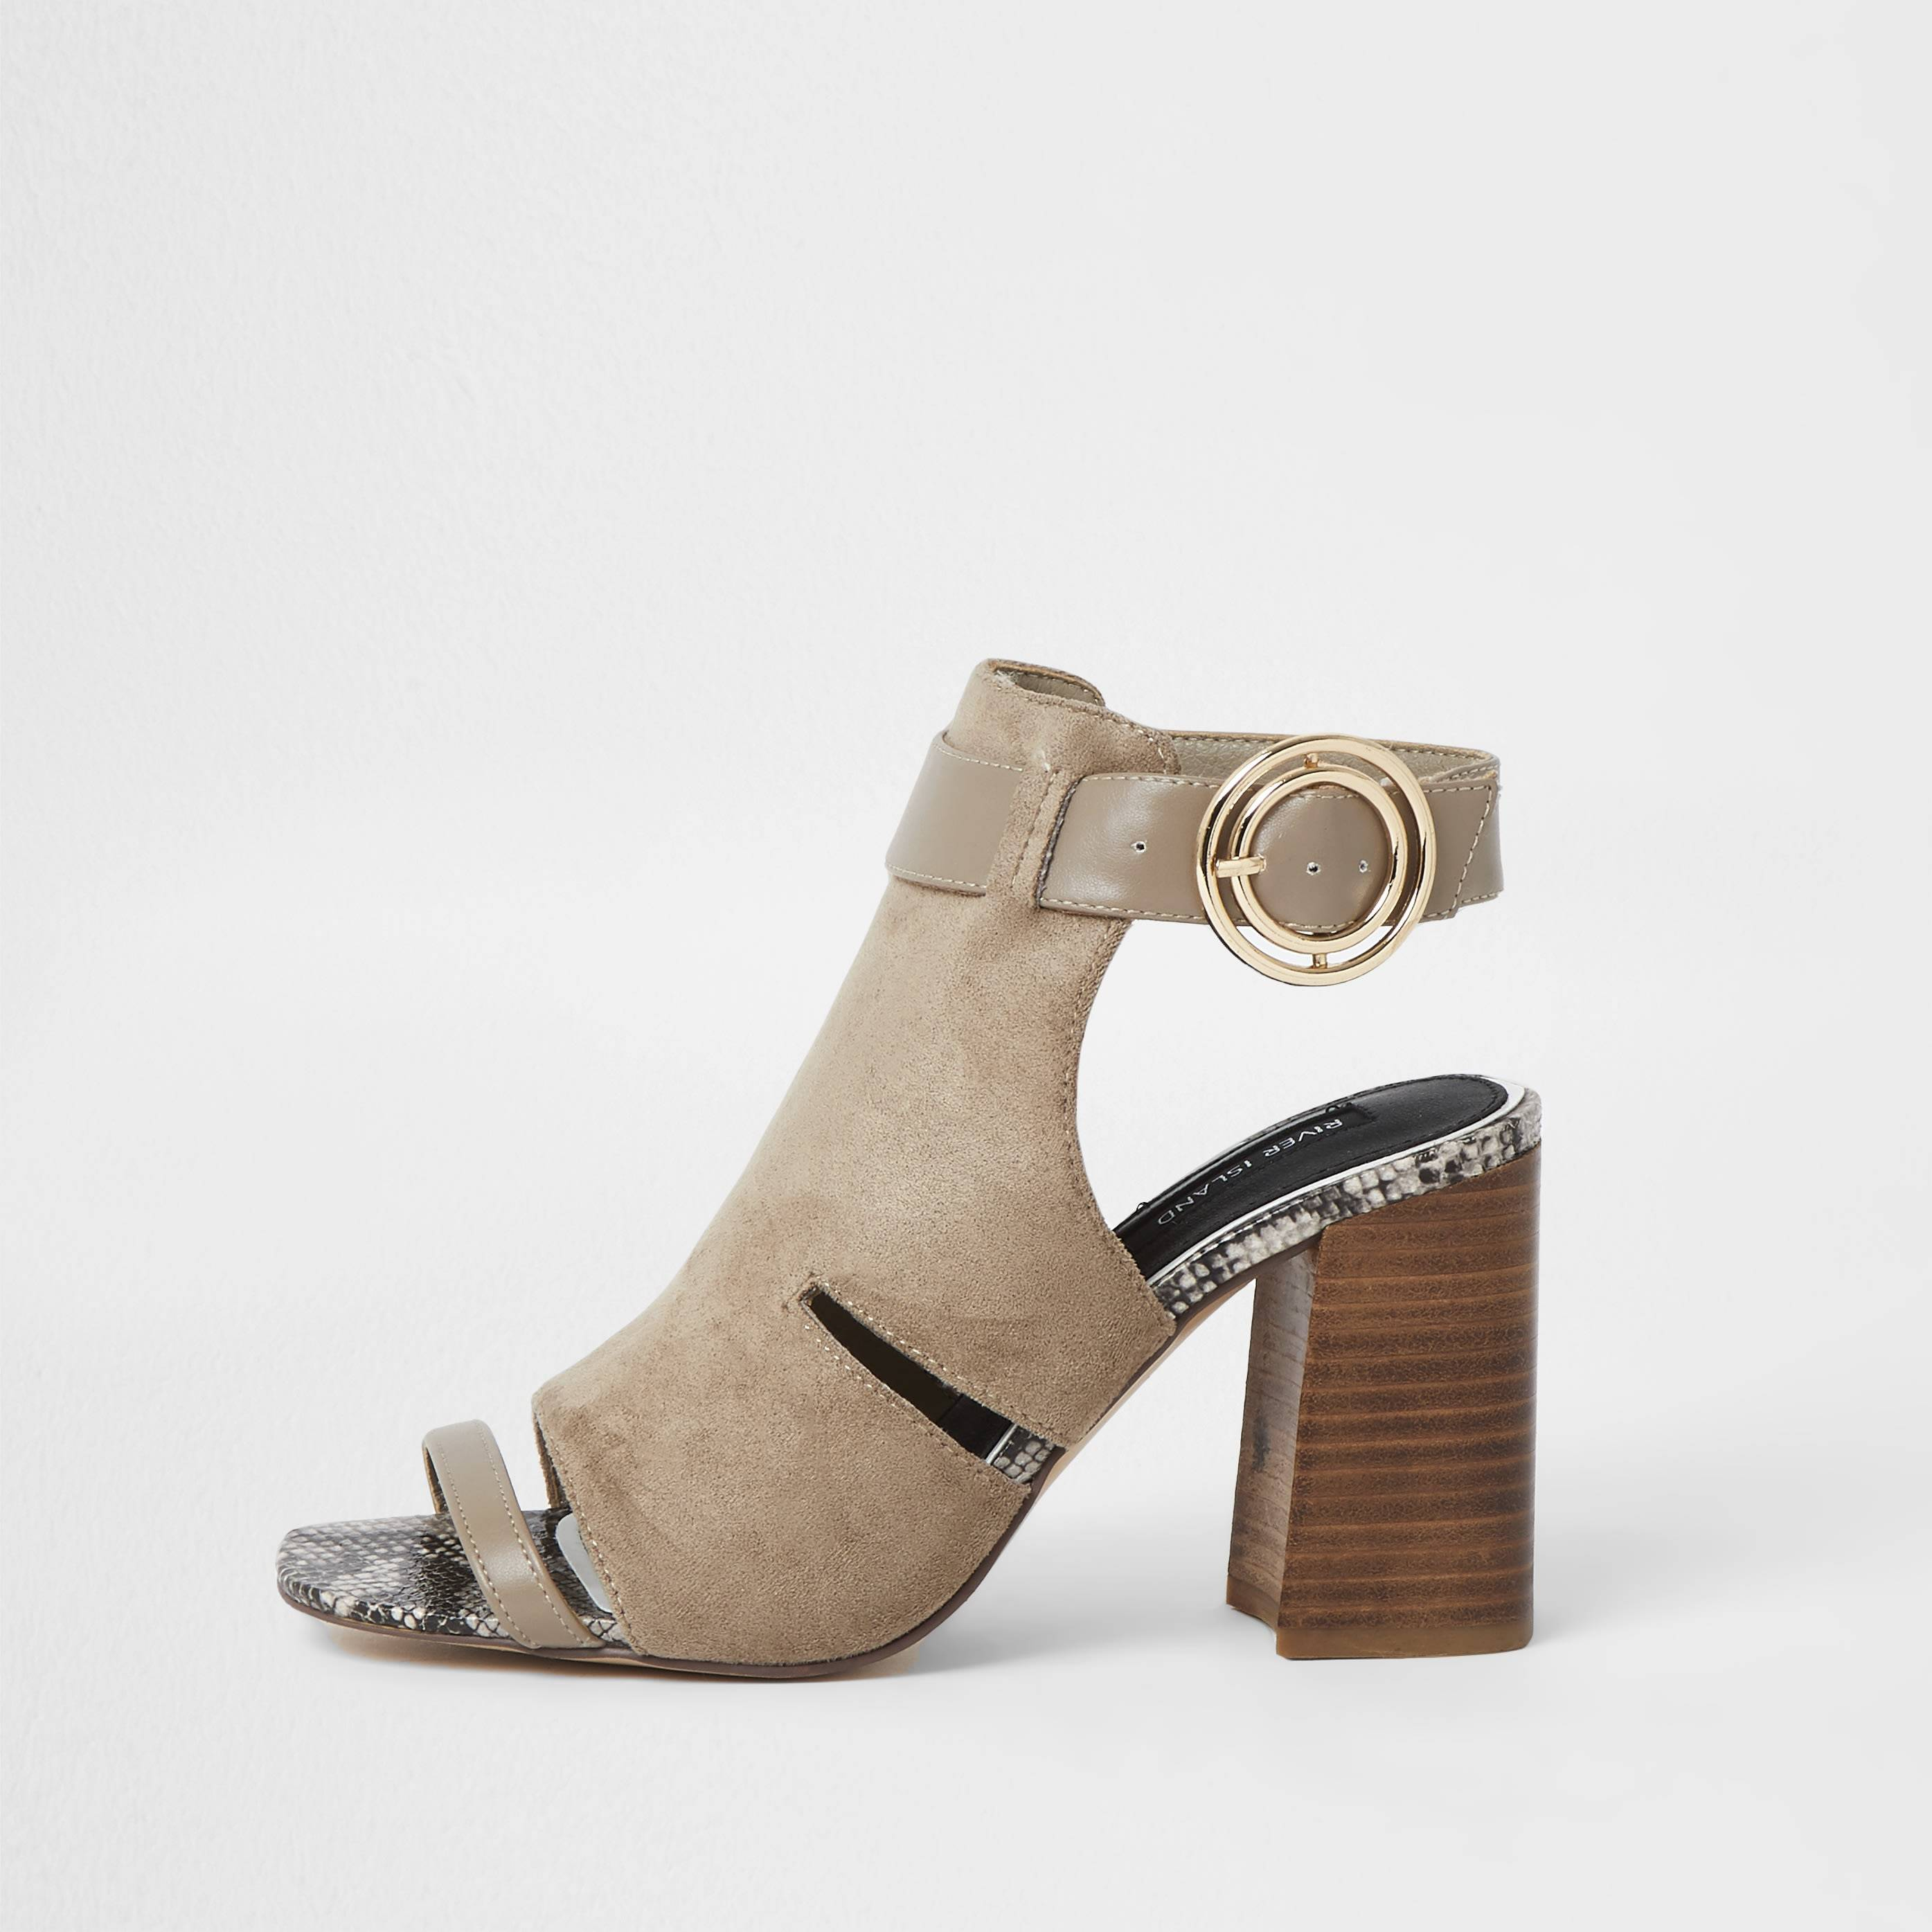 river island Womens Beige cut out buckle shoe boots (9)